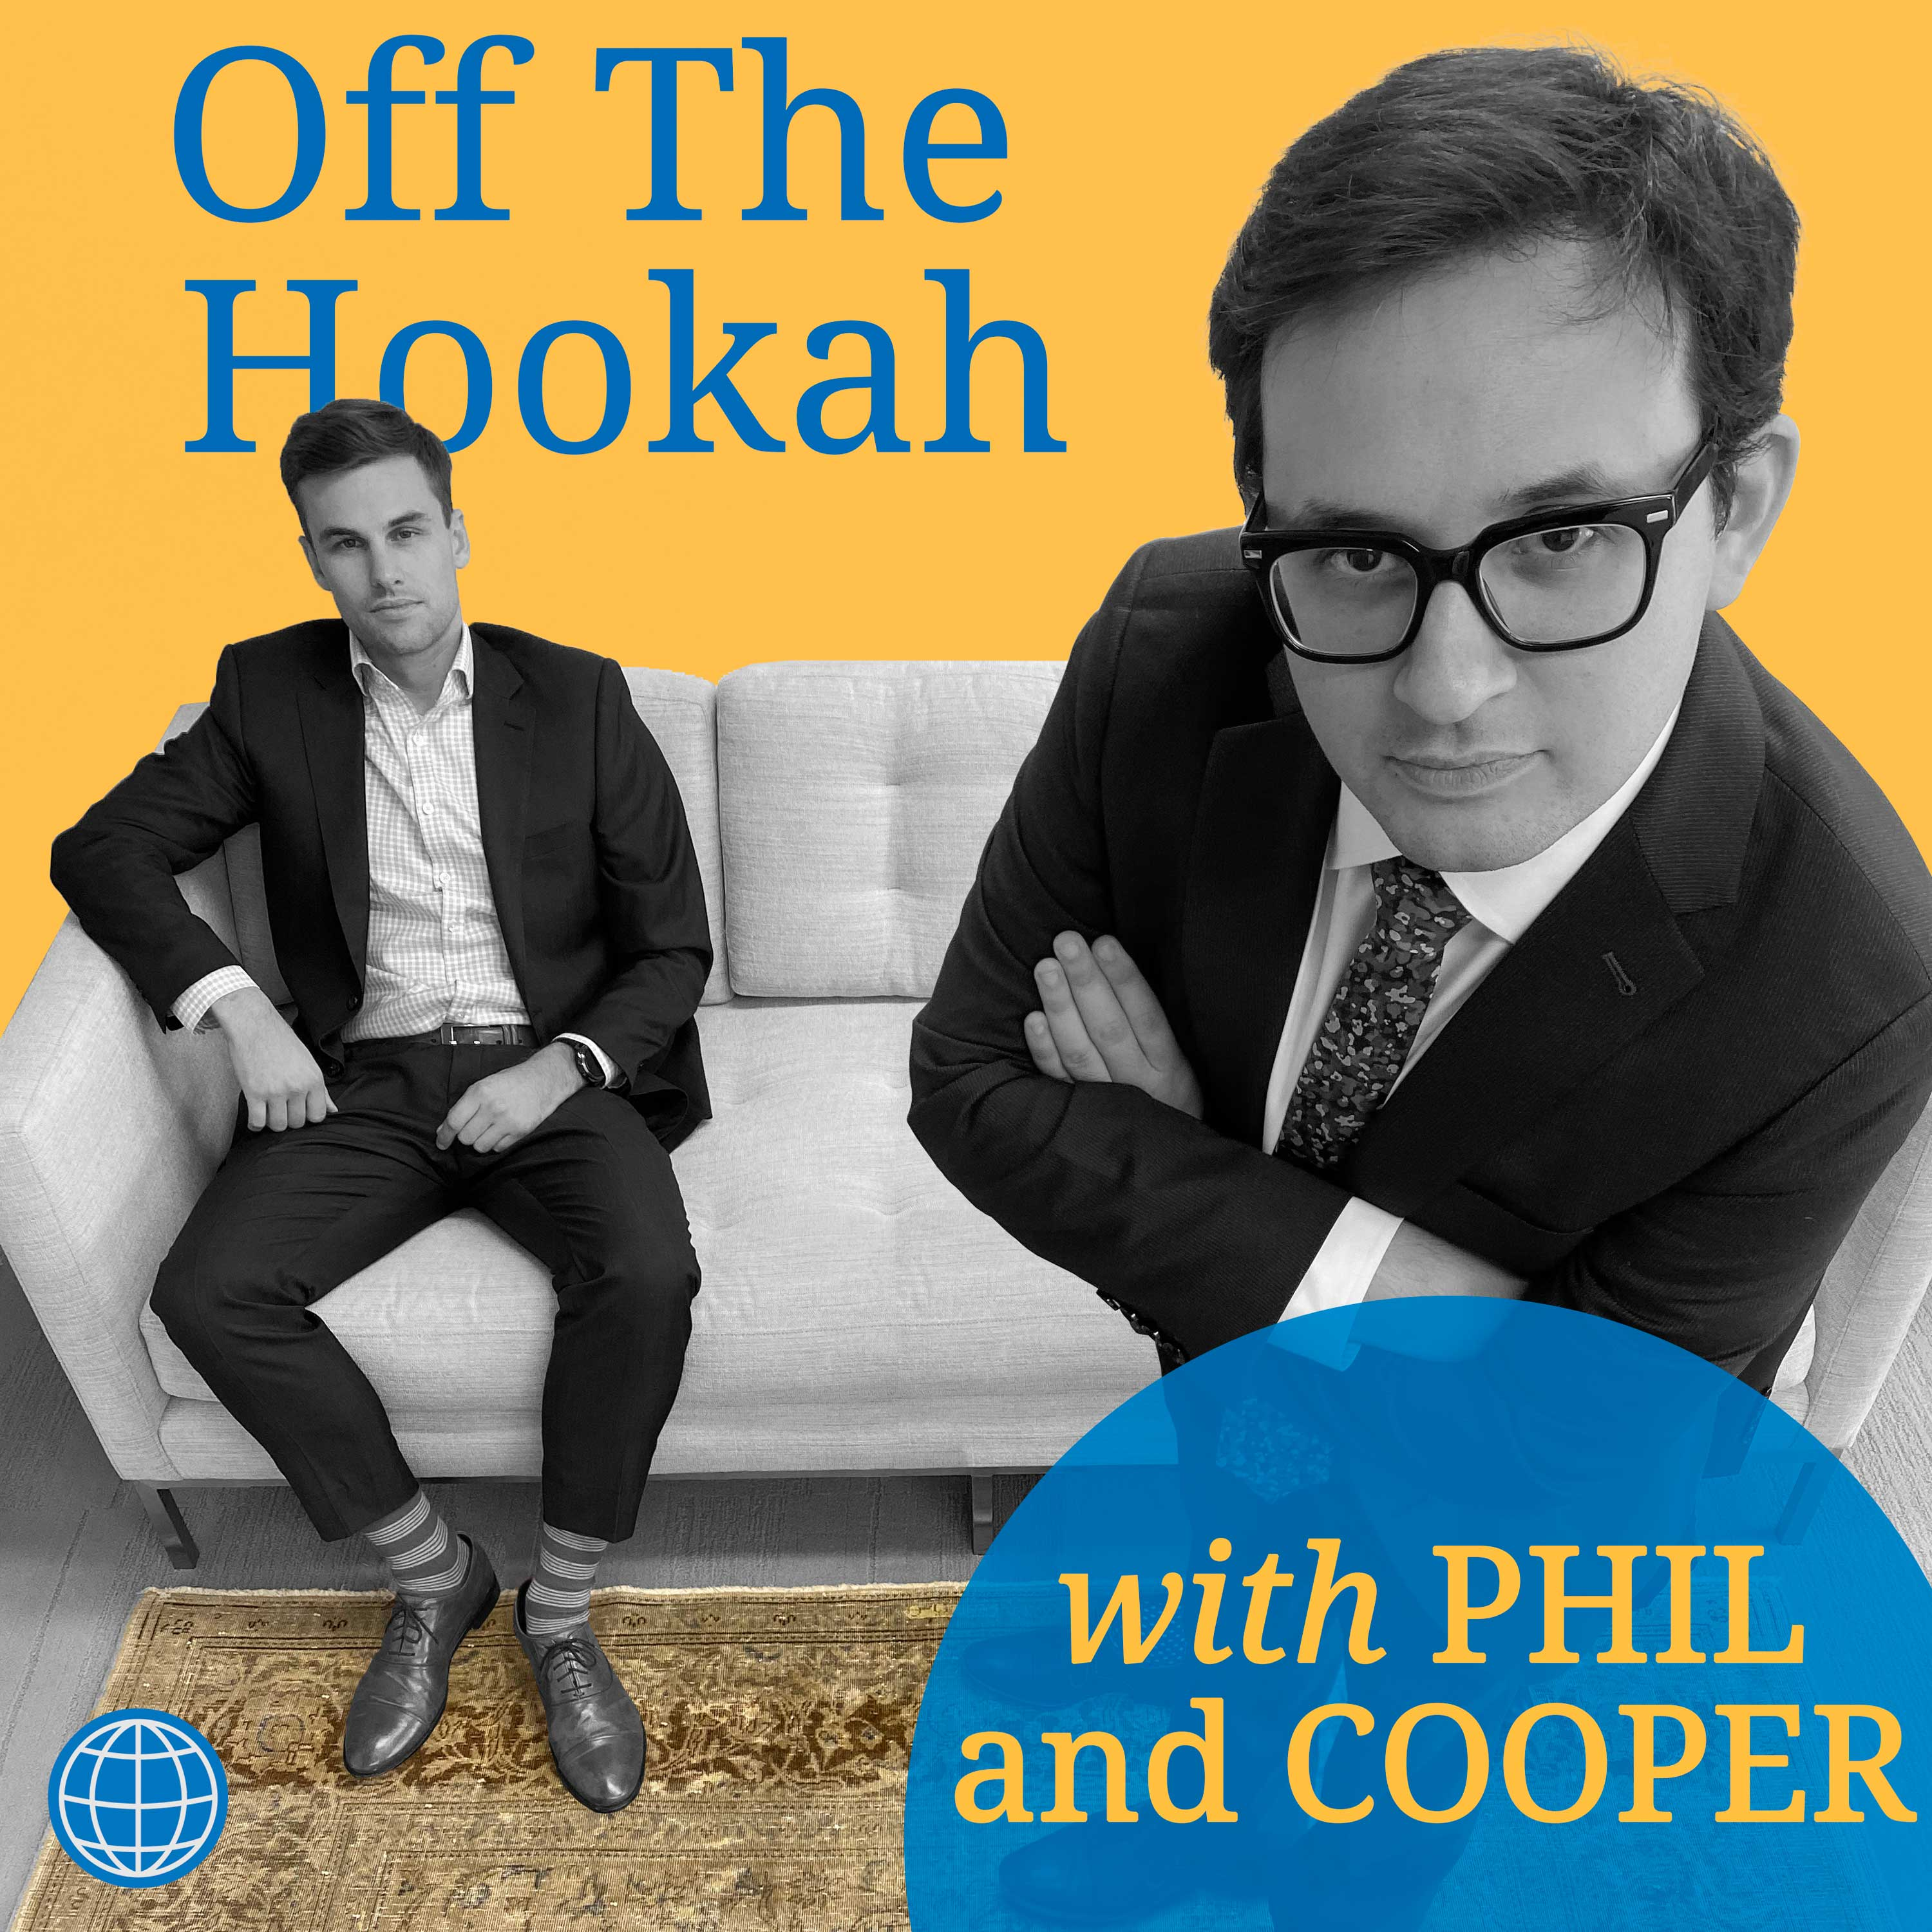 Off the Hookah with Phil and Cooper show art